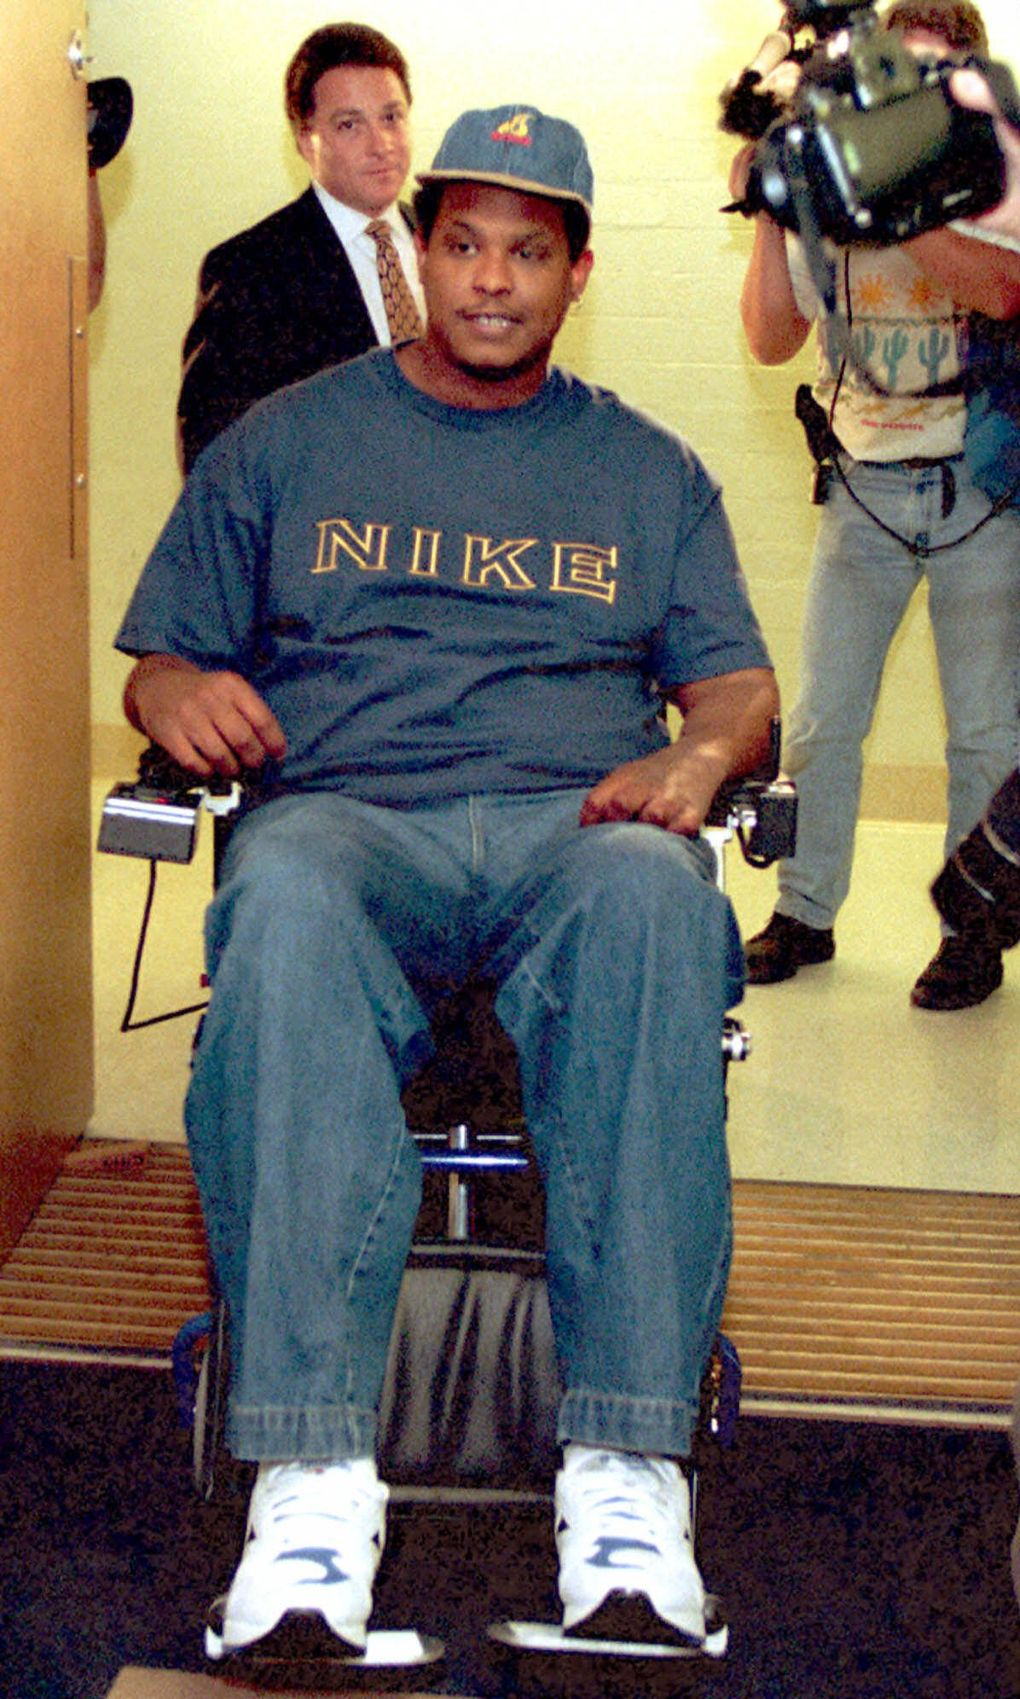 Mike Frier maneuvers his wheelchair before a news conference at the UW Medical Center in Seattle. The former Seahawks defensive lineman spoke for the first time since a Dec.1,1994 accident left him paralyzed. (GARY STEWART/Associated Press)